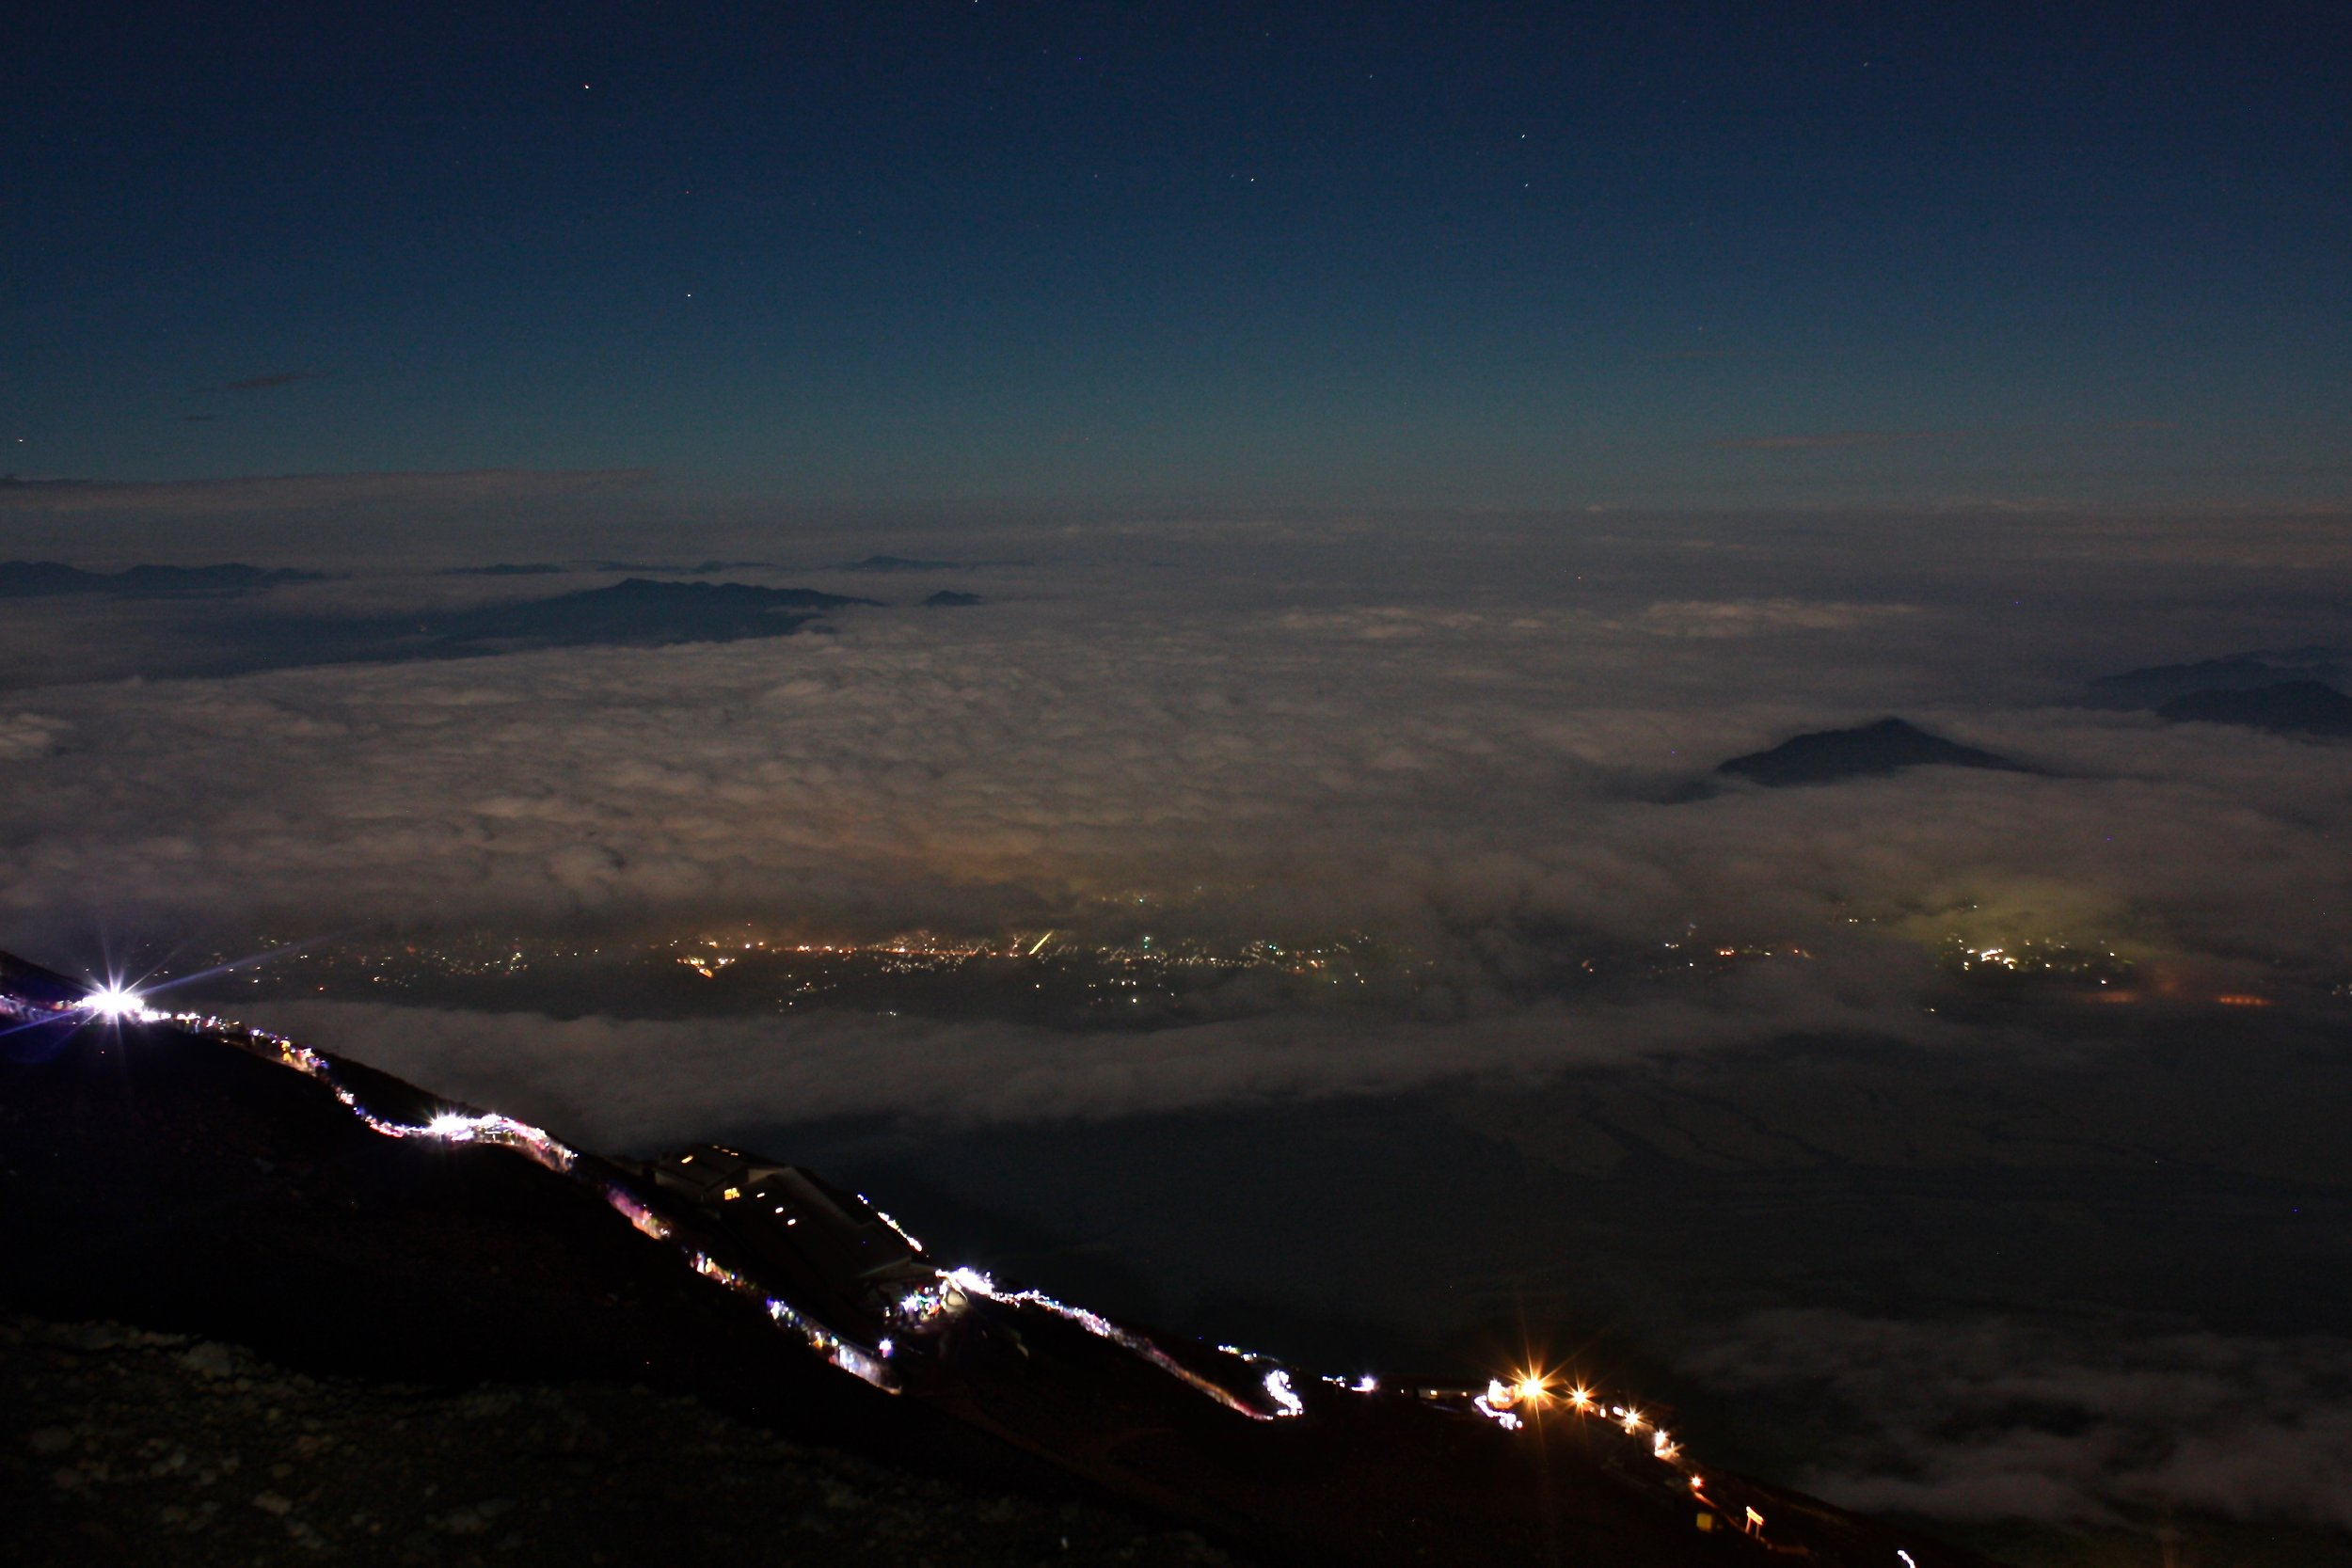 A trail of headlights makes their way up the mountain and a blanket of cloud over the city of Tokyo below.